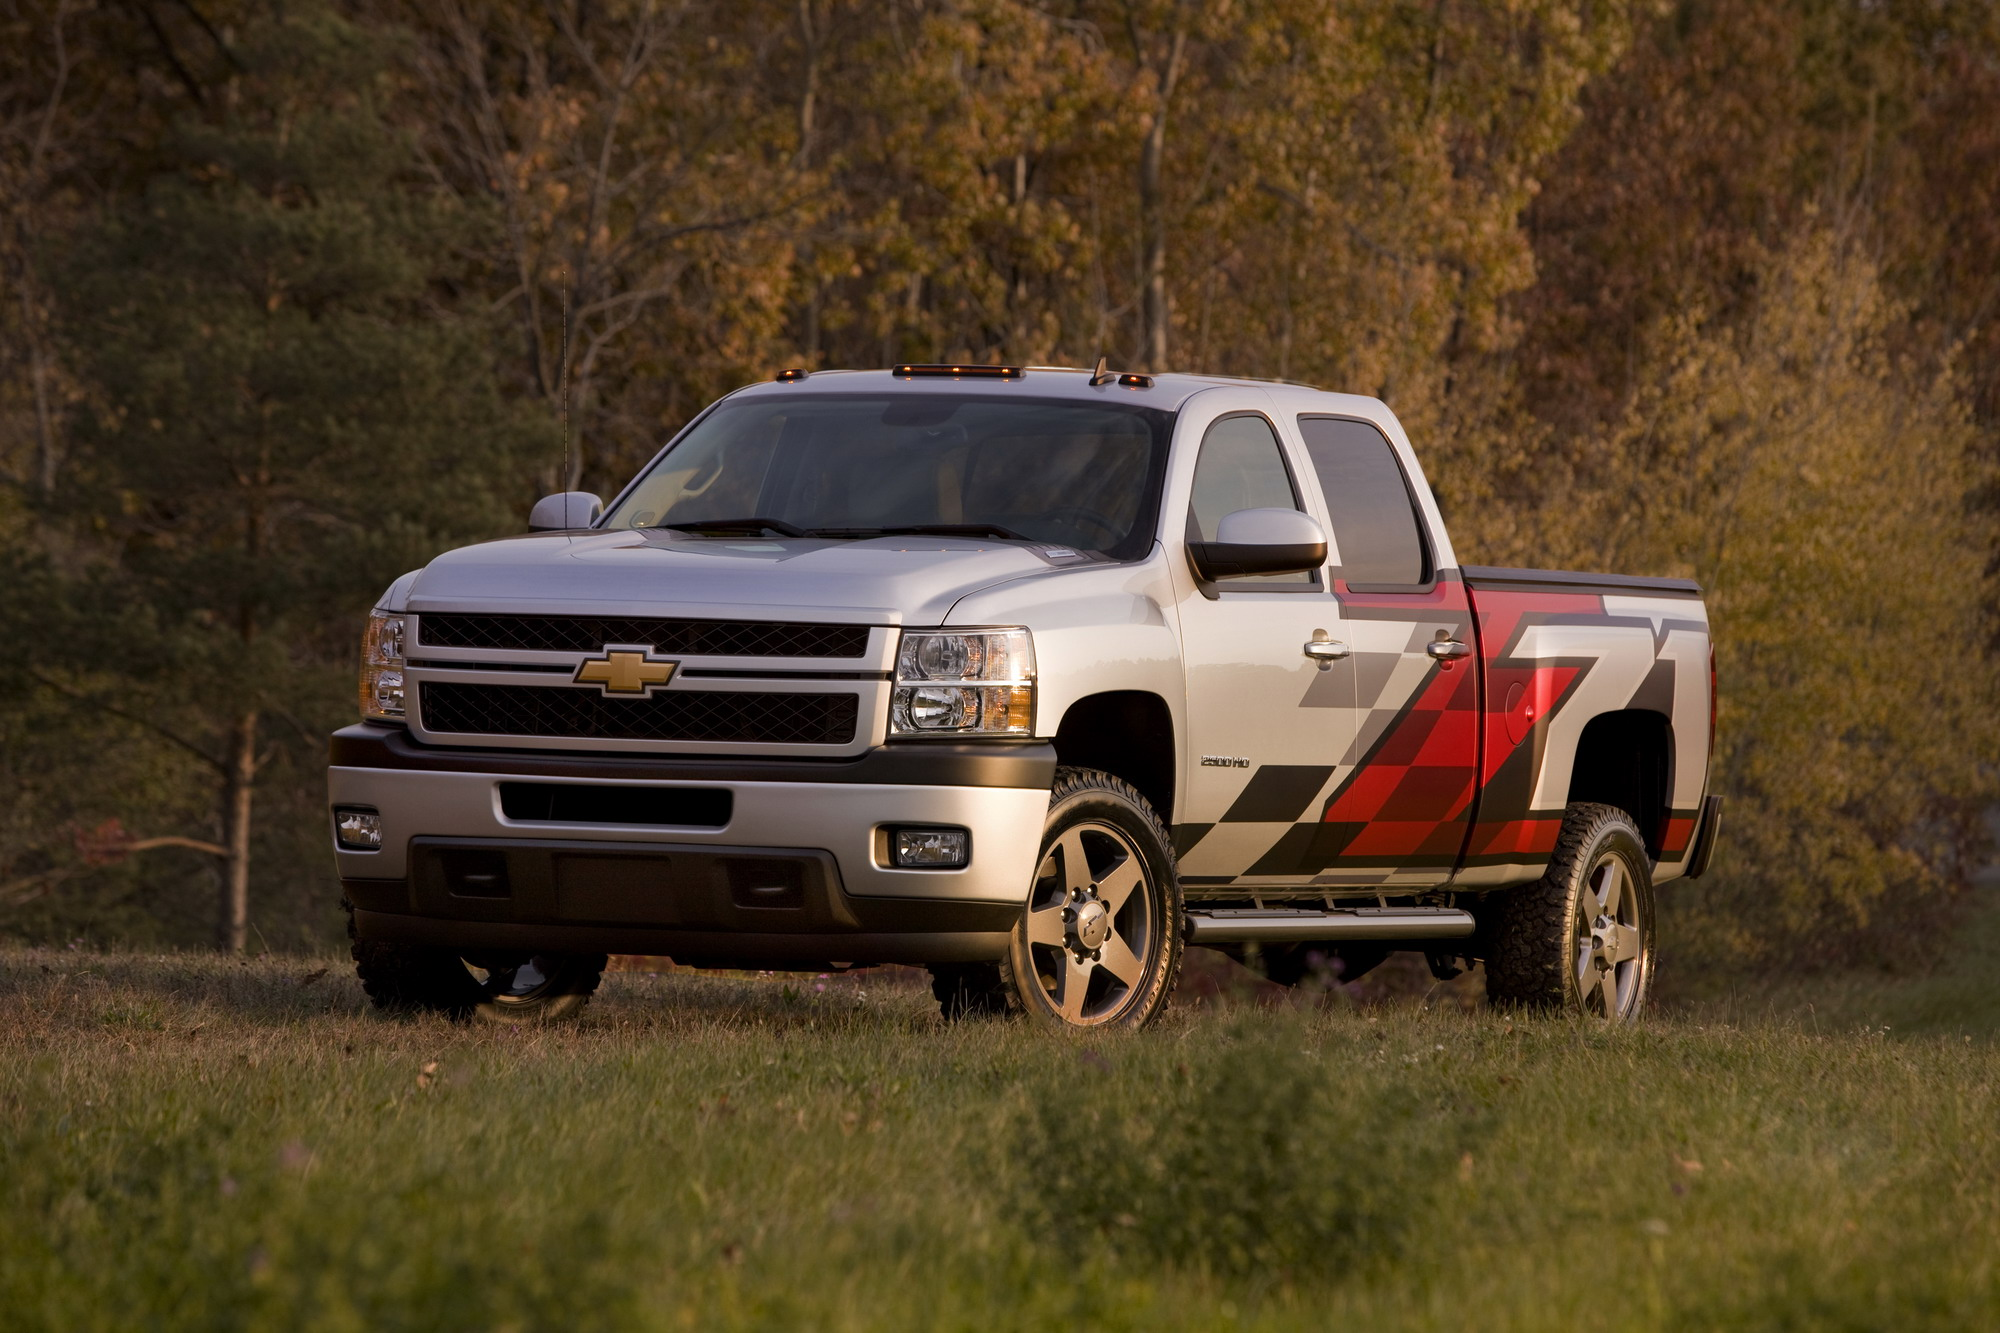 2010 chevrolet silverado 2500 hd z71 review top speed. Black Bedroom Furniture Sets. Home Design Ideas